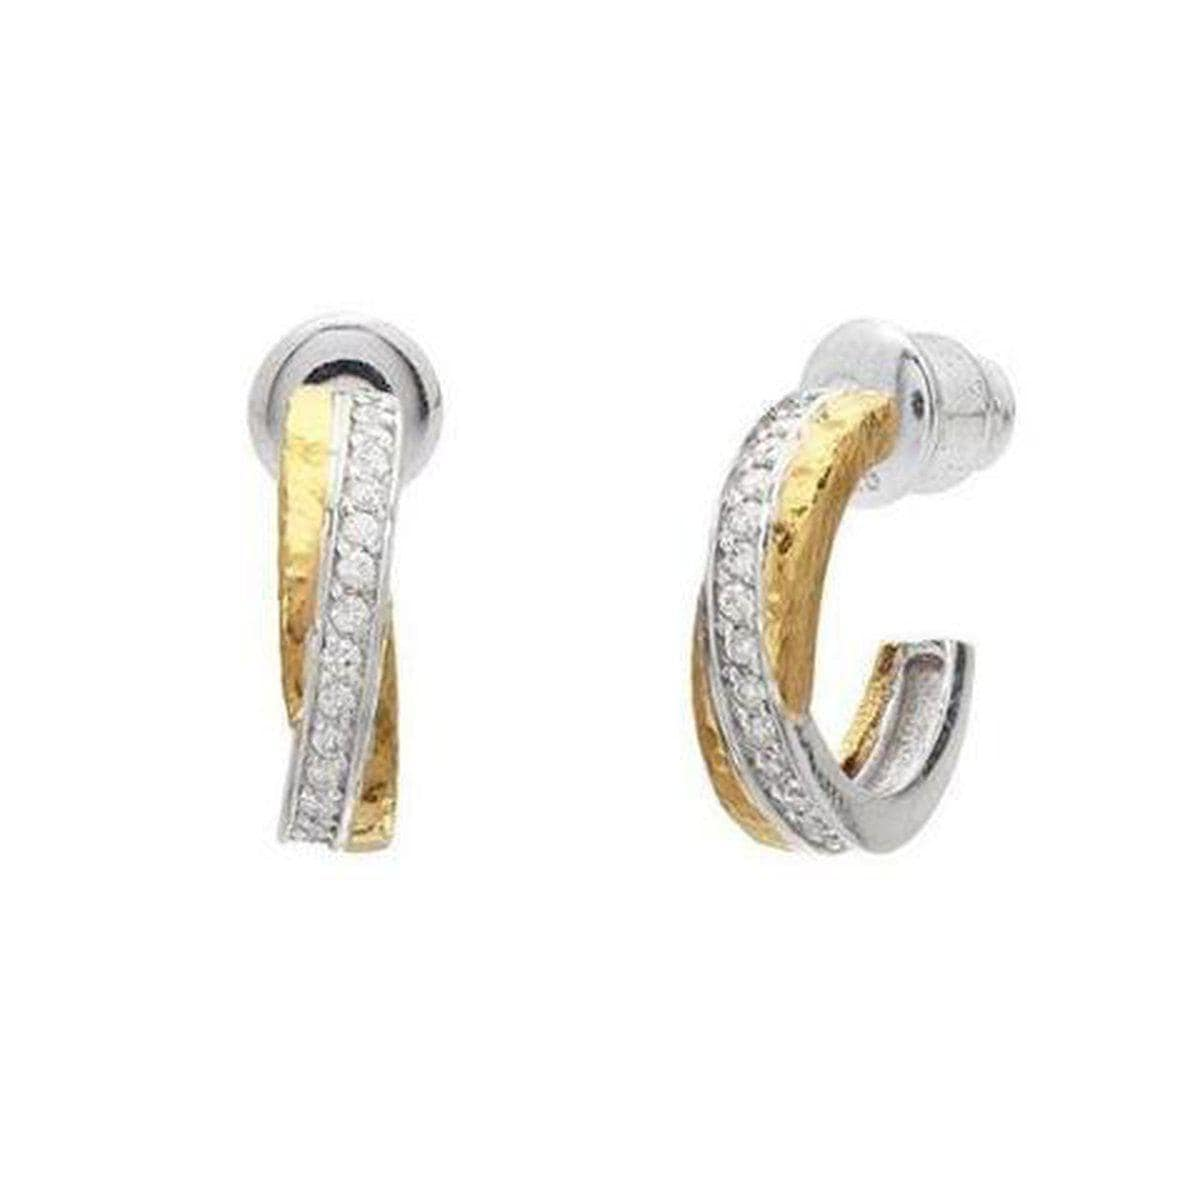 Duet 24K Gold White Diamond Earrings - E-INT-HP-S-21DI-GURHAN-Renee Taylor Gallery